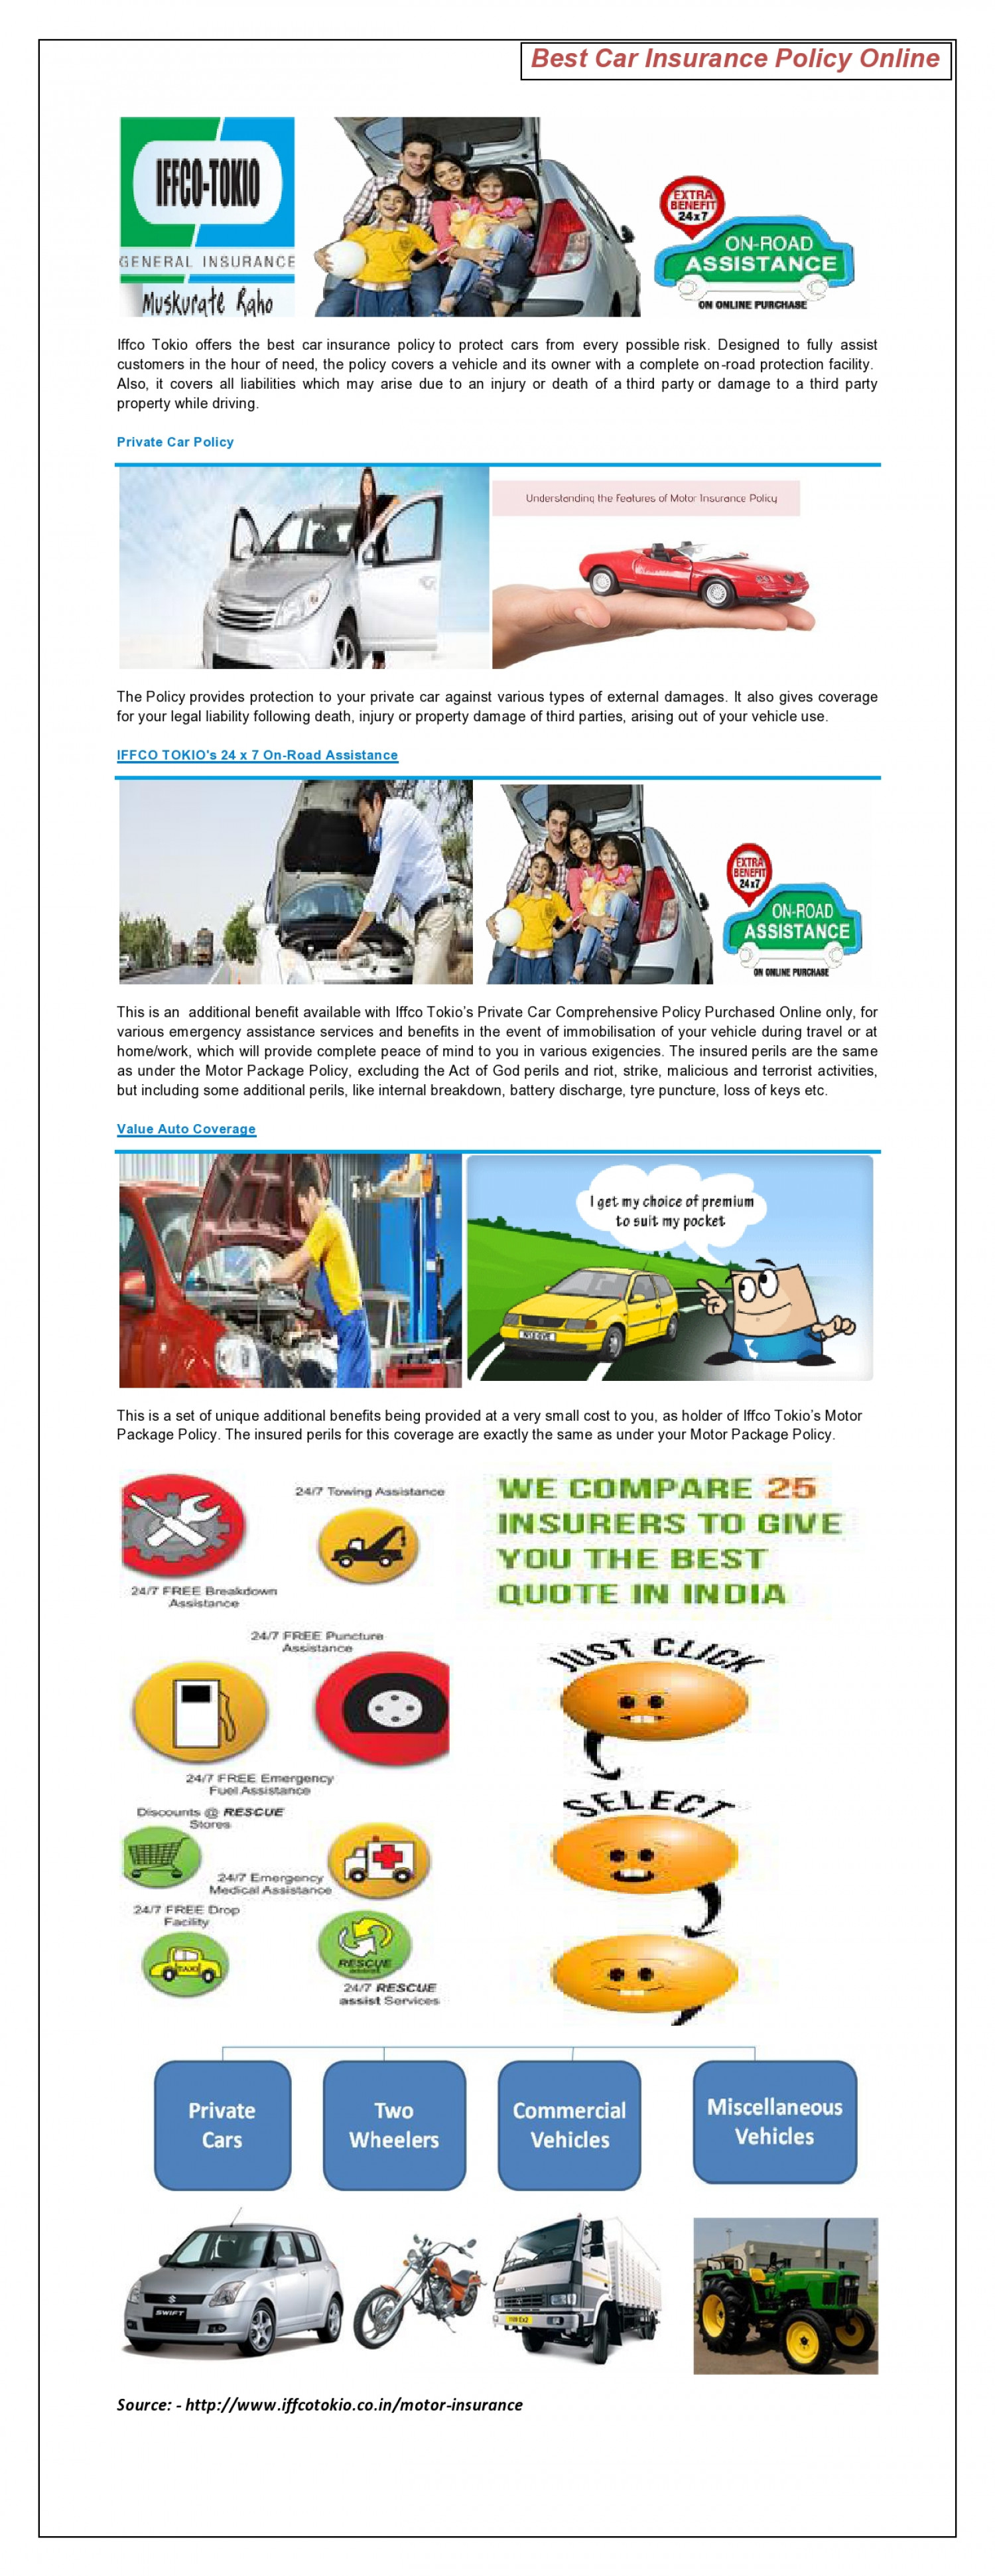 Best Car Insurance Policy Online Infographic